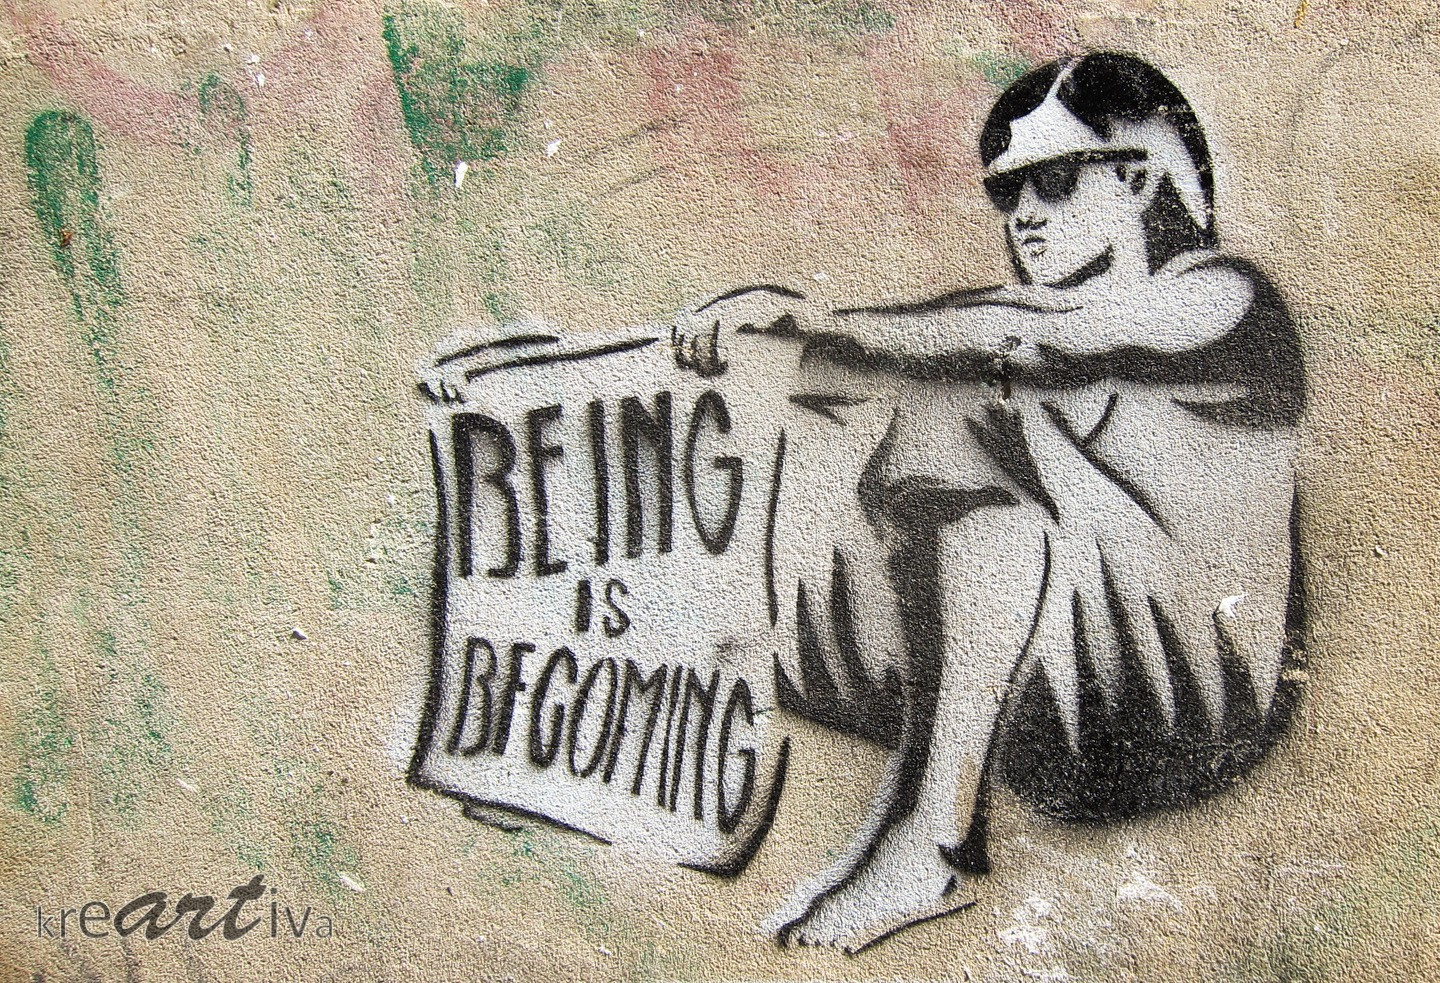 BEING is BECOMING, Dresden Deutschland 2014.